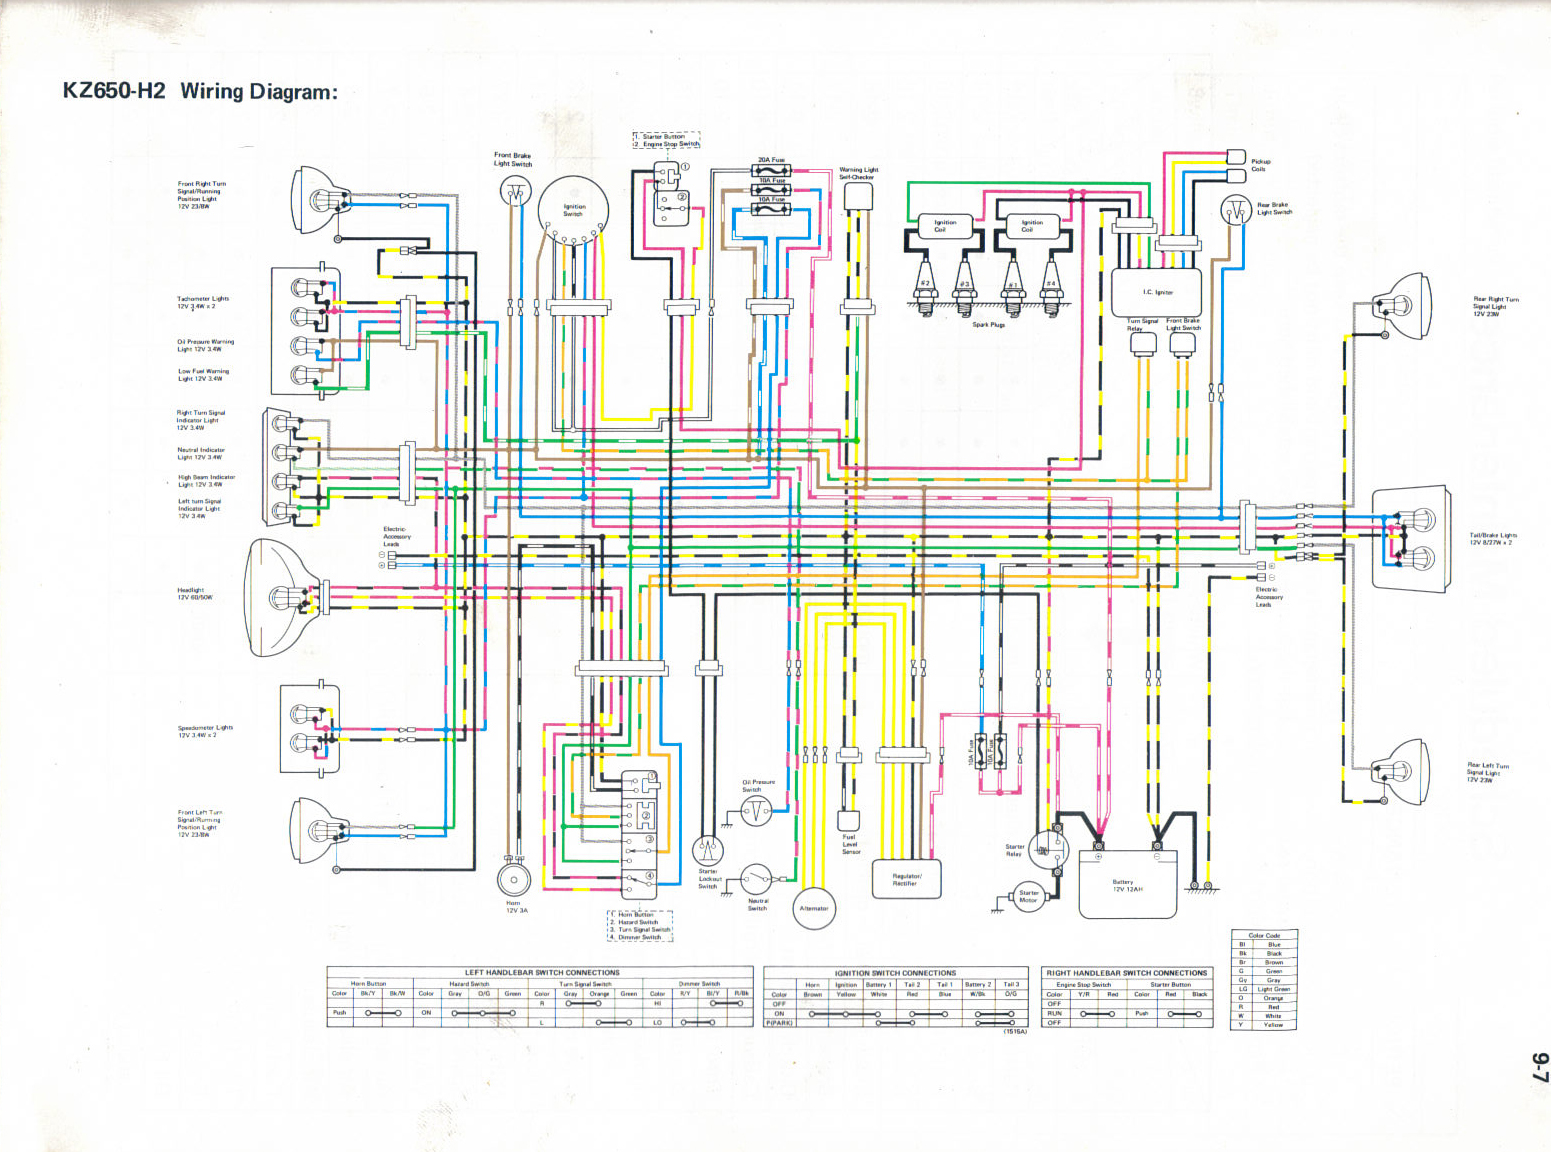 hight resolution of kawasaki wiring diagrams wiring diagram mega kawasaki zephyr 750 wiring diagram kawasaki 750 wiring diagram